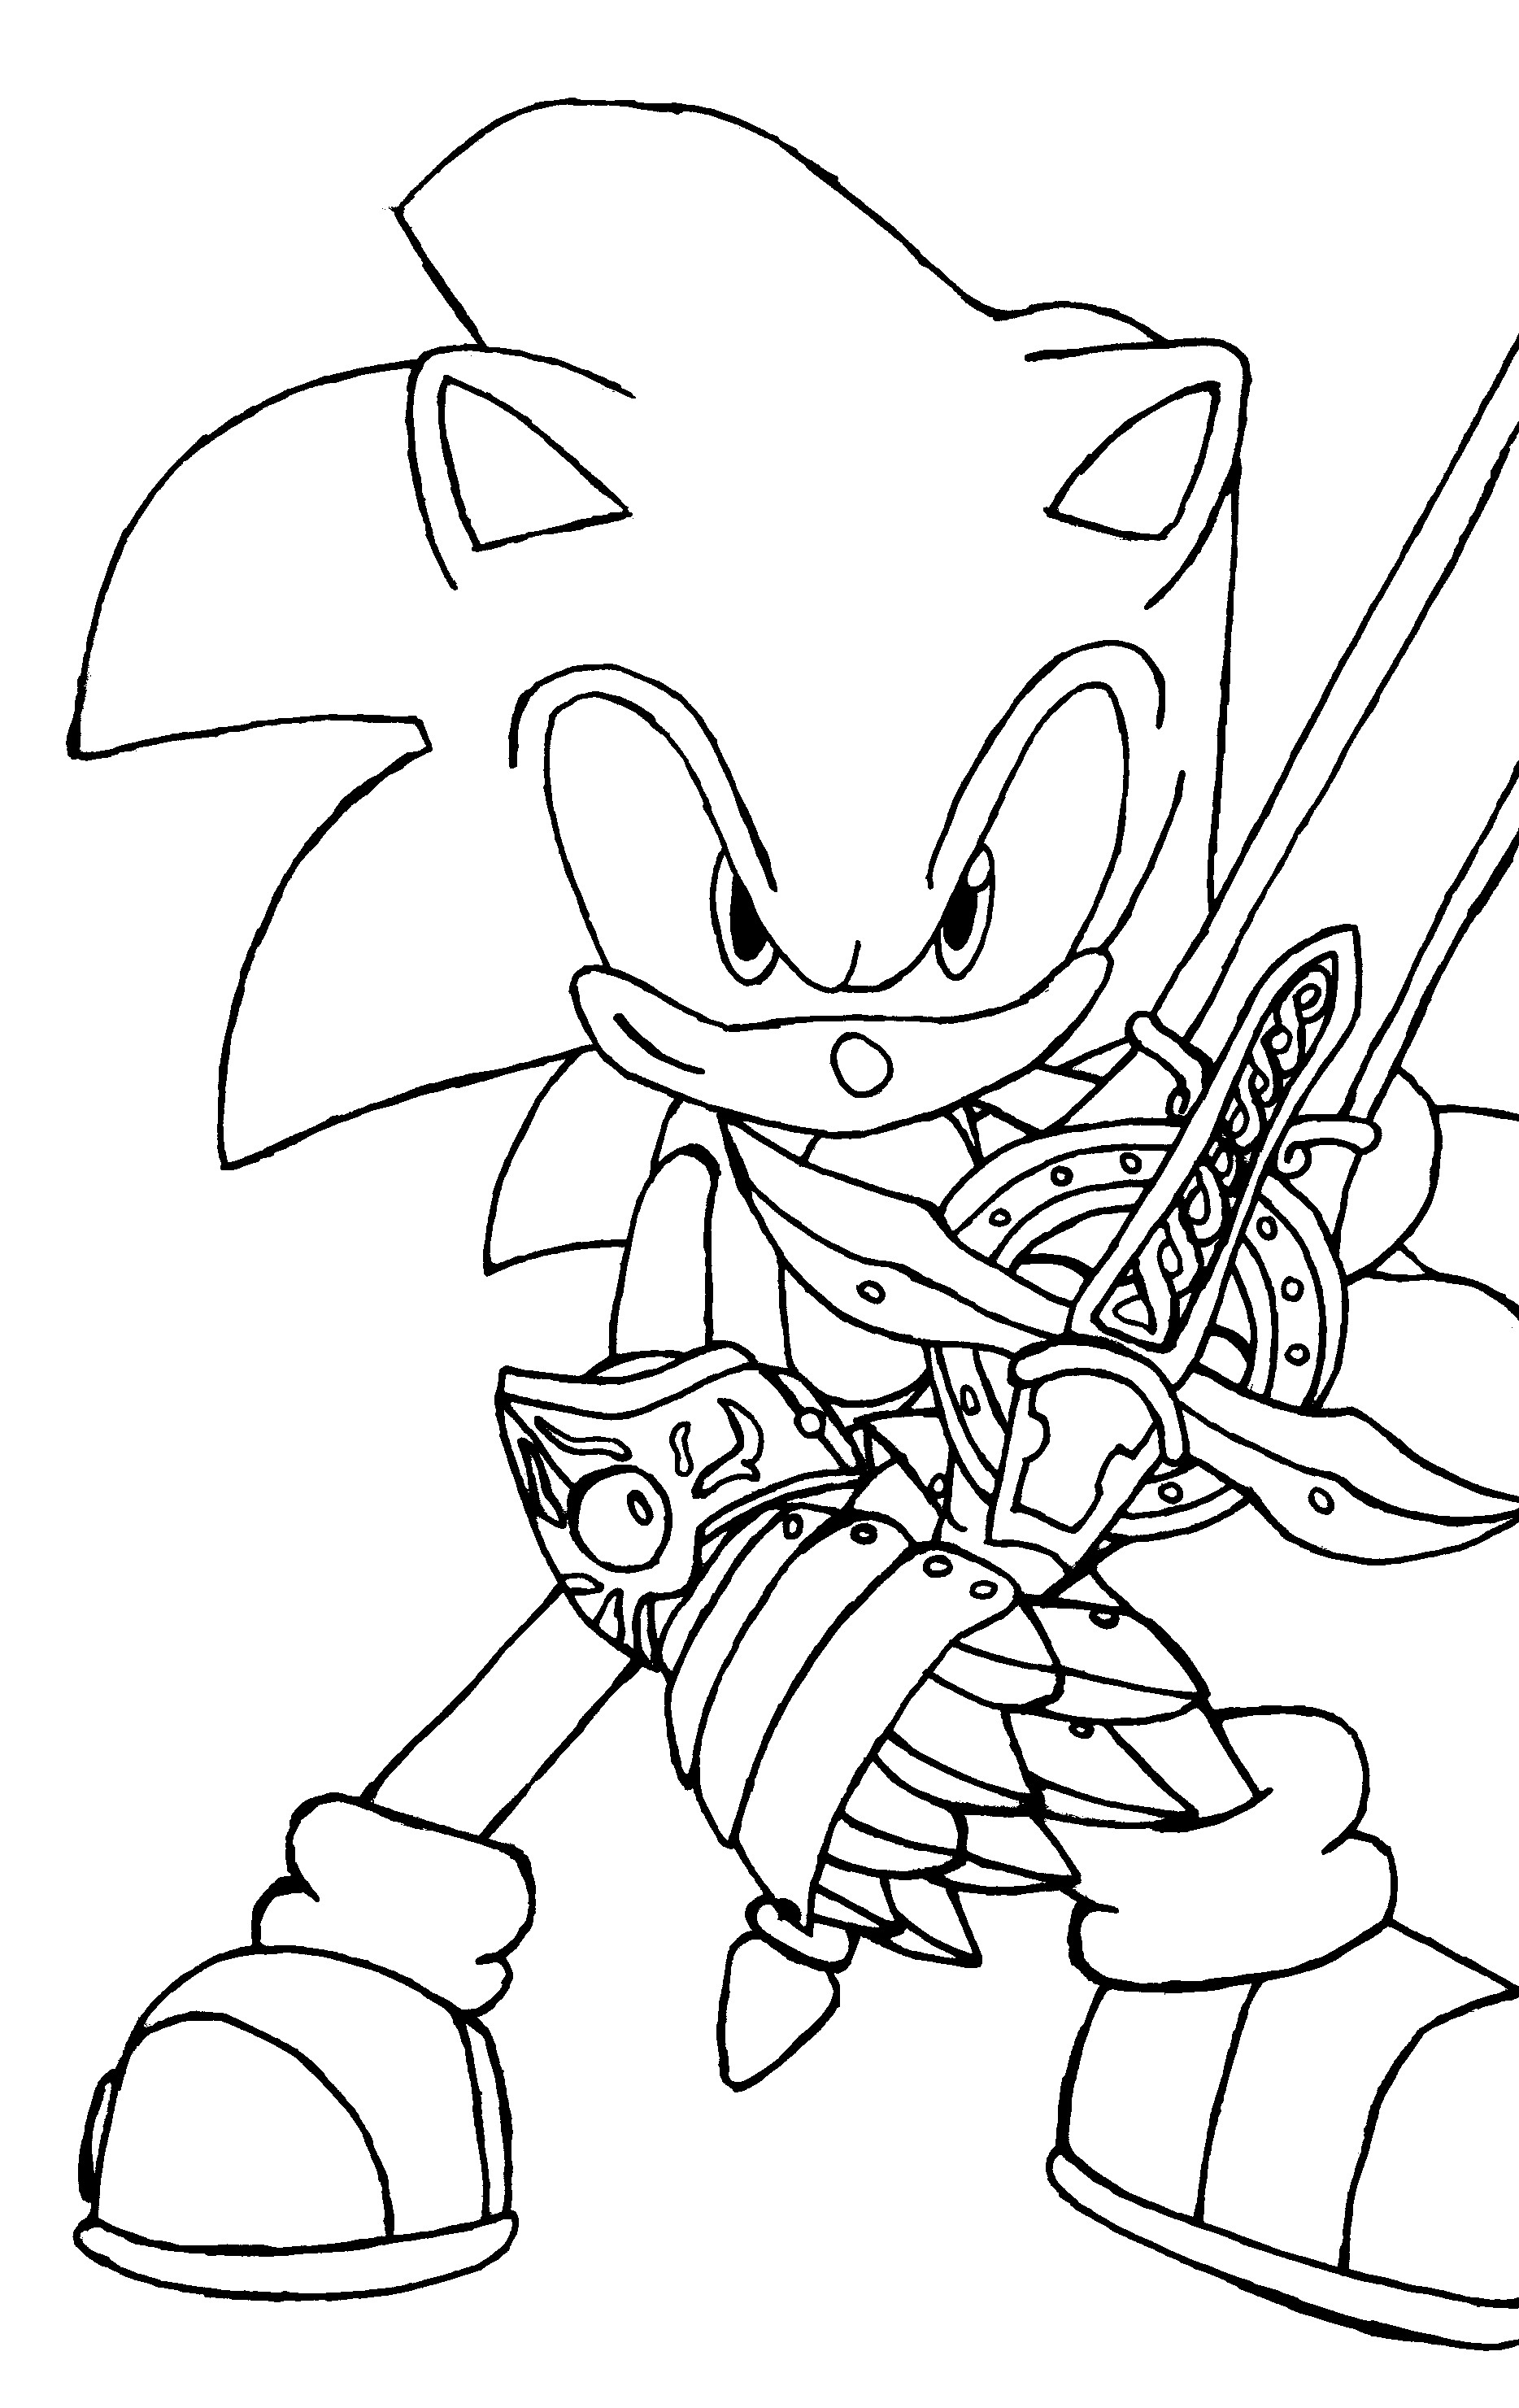 printable sonic coloring pages free printable sonic the hedgehog coloring pages for kids pages sonic coloring printable